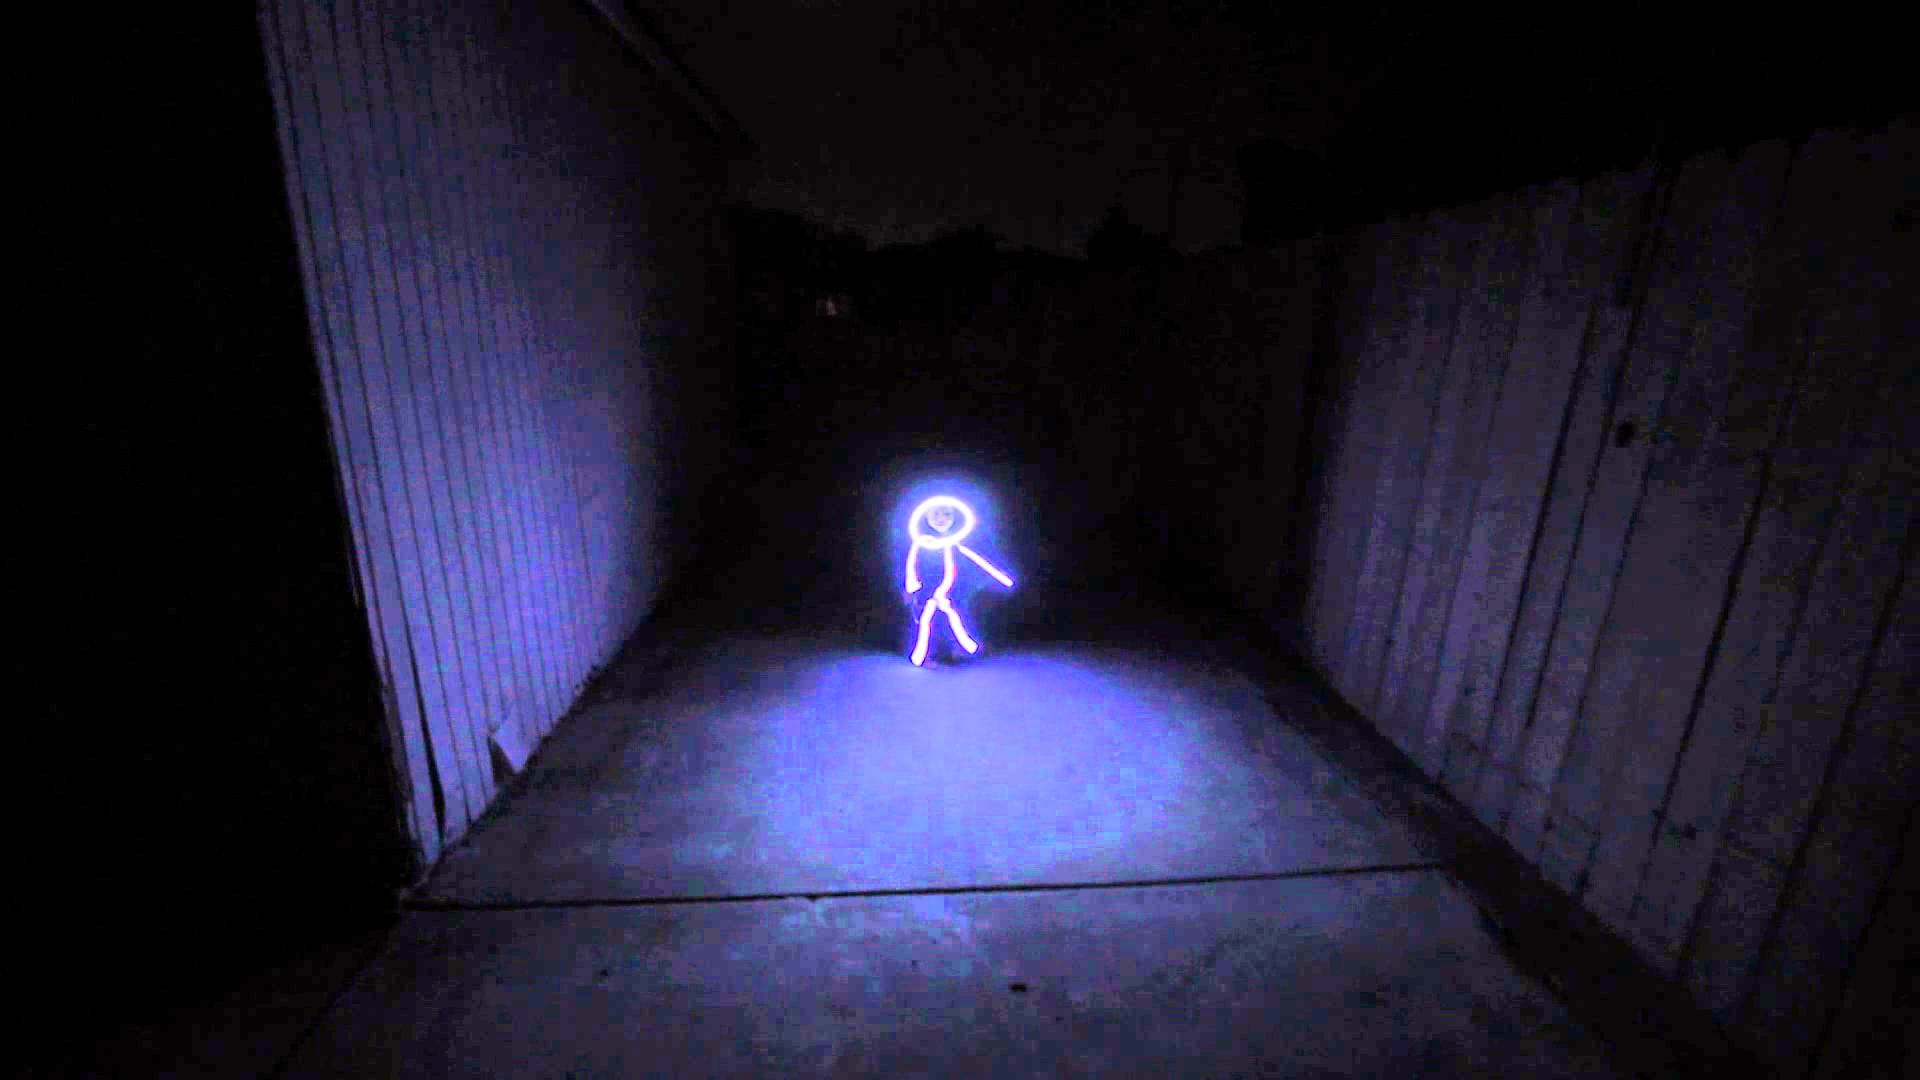 These Costumes Turn You Into a Giant LED Stick Figure 2